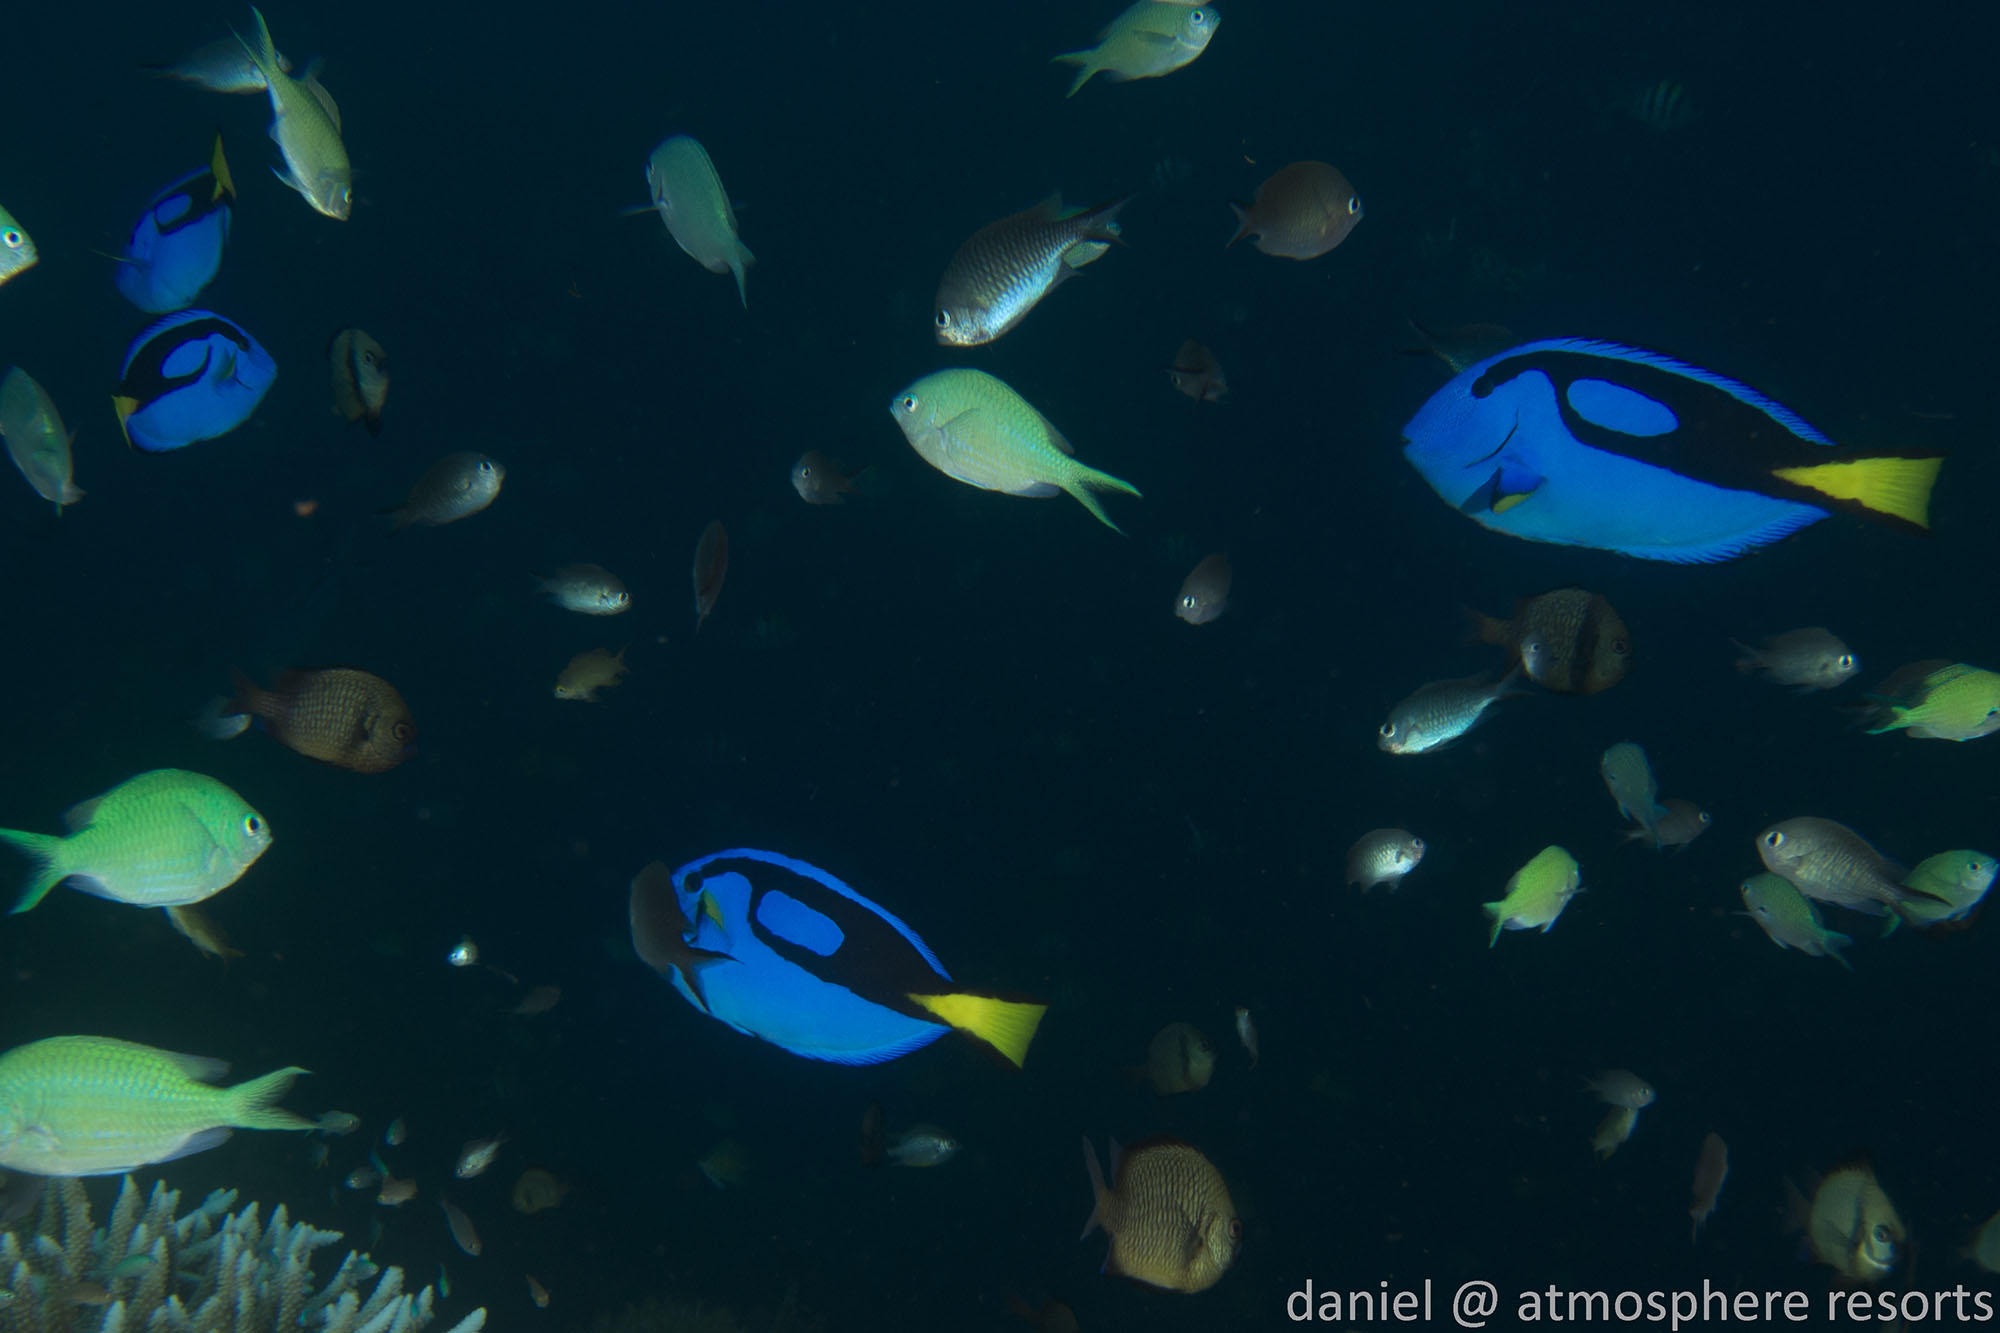 Dory - blue tang - surgeon fish - beloved child has many names, this one at Atmosphere Resort in the Philippines